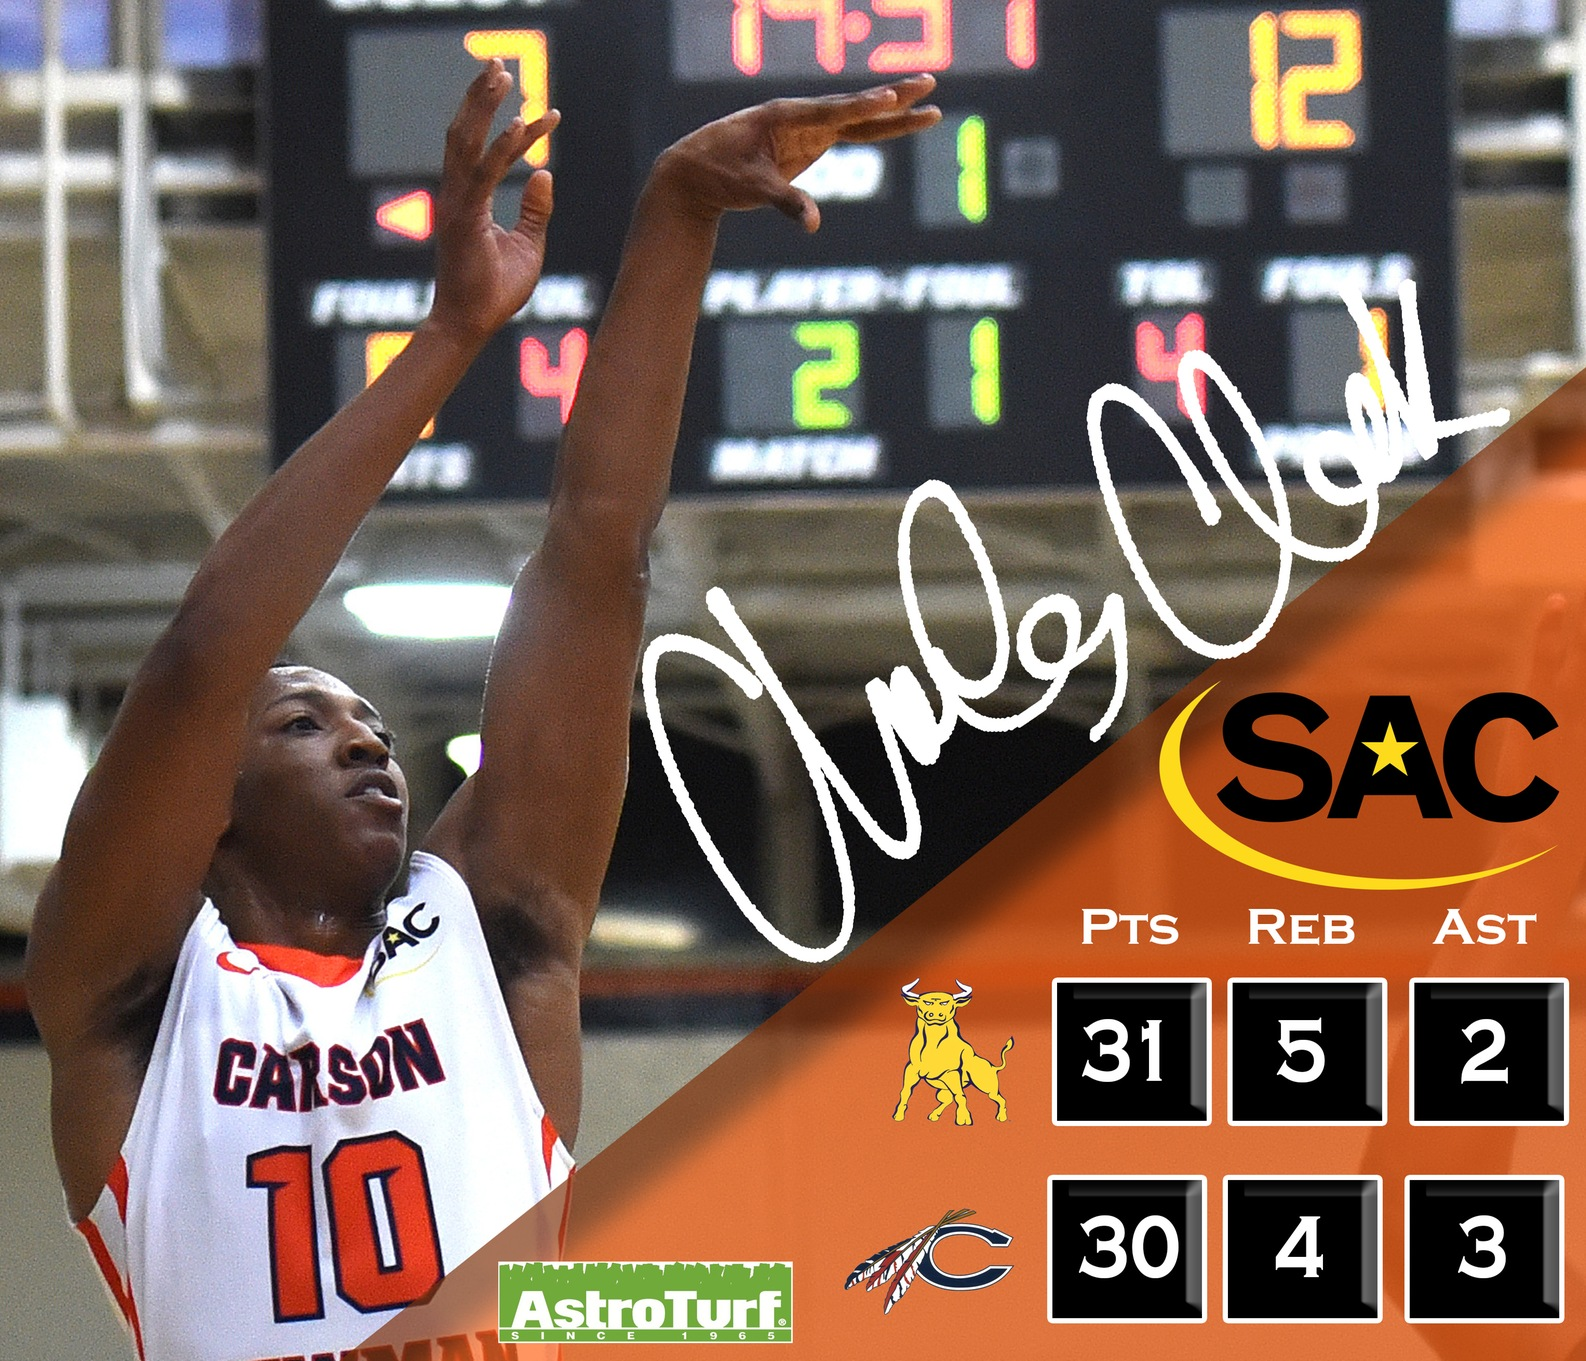 Nine so fine, Clark wins another SAC Player of the Week honor